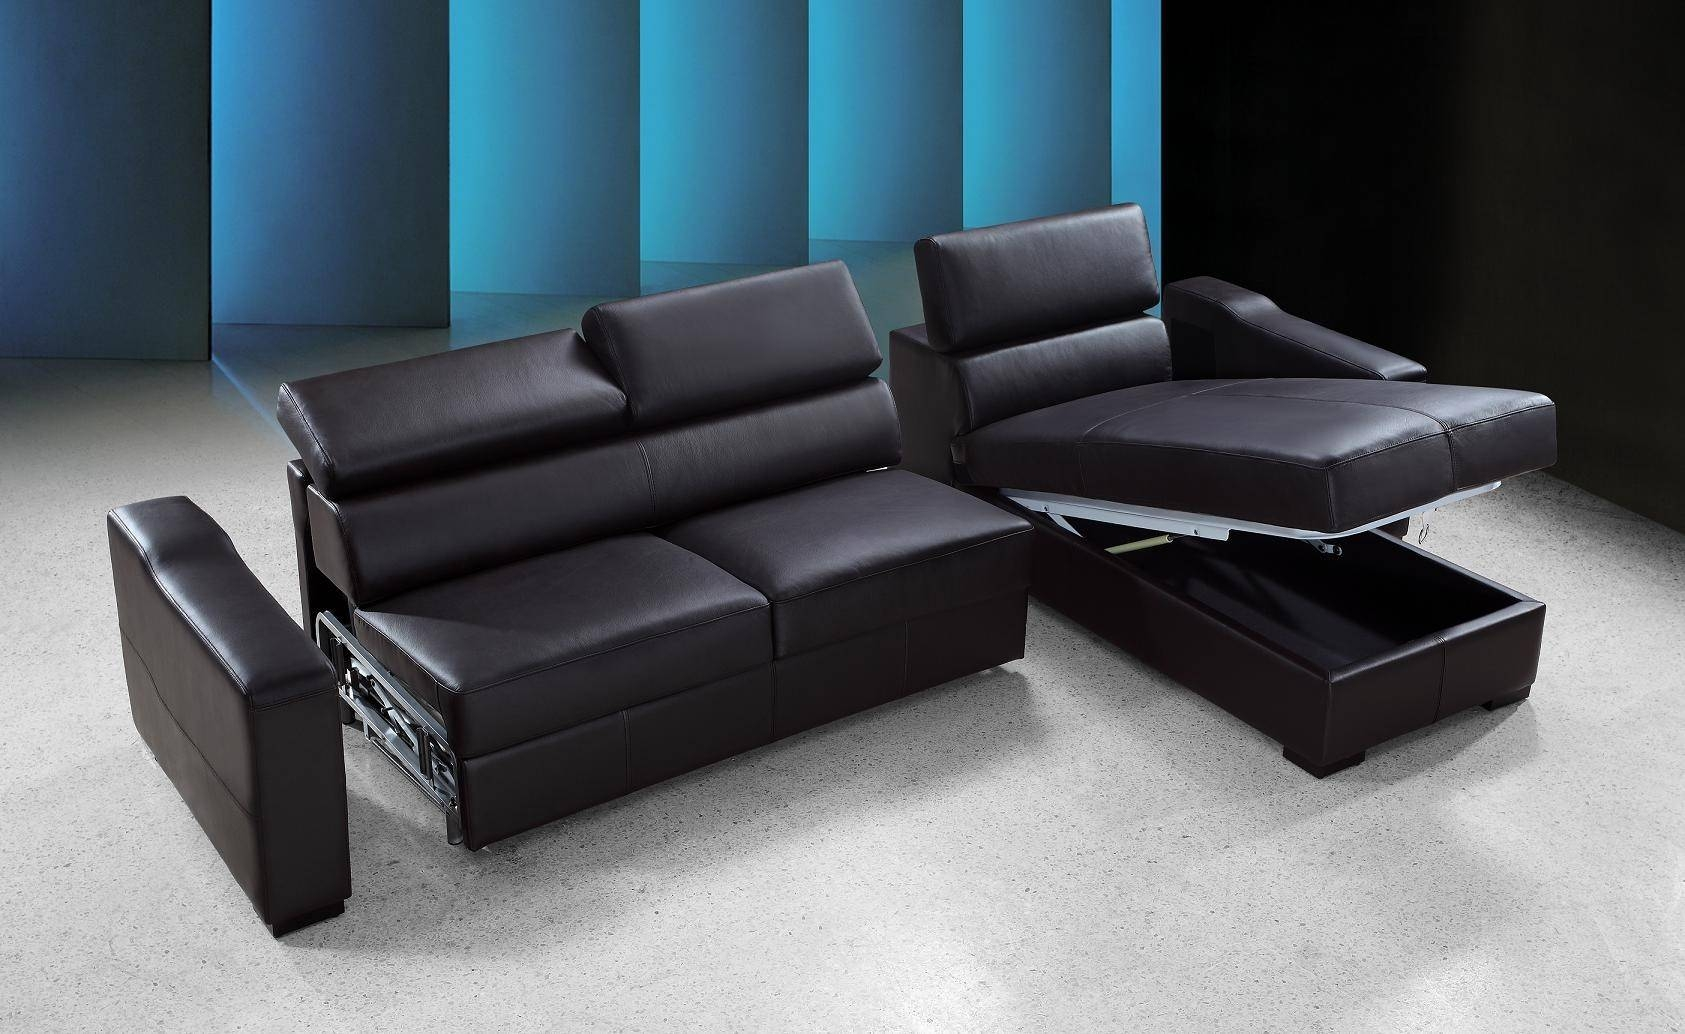 Furniture: Black Leather Sectional Sofa With Storage For Living pertaining to Sectional Sofa With Storage (Image 9 of 25)